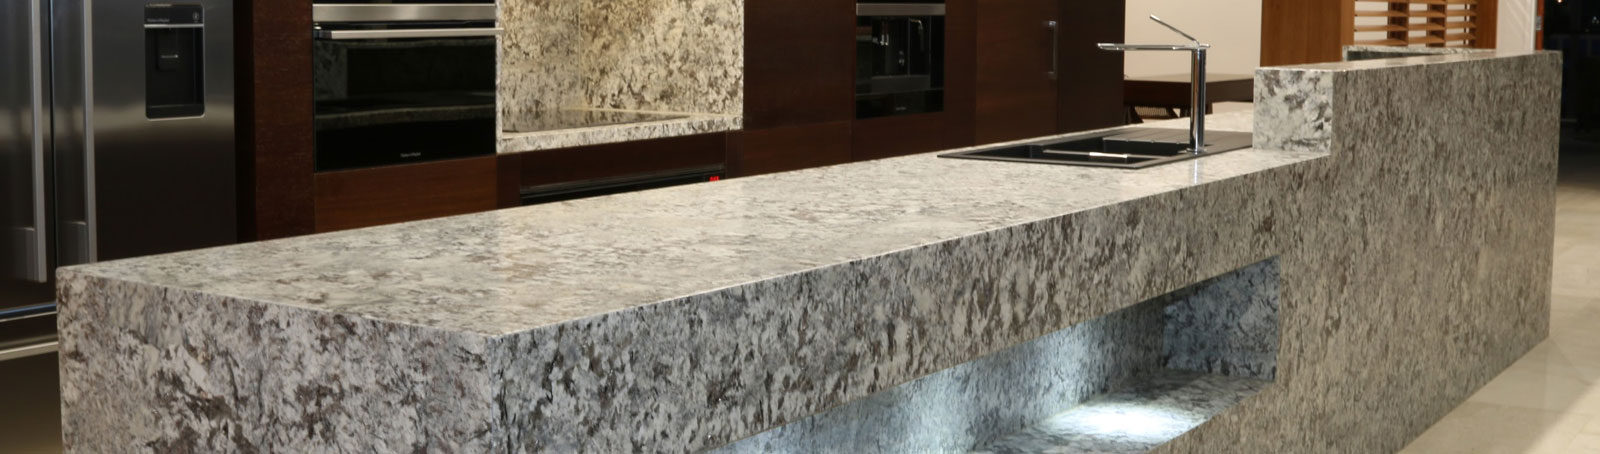 Image result for granite benchtops